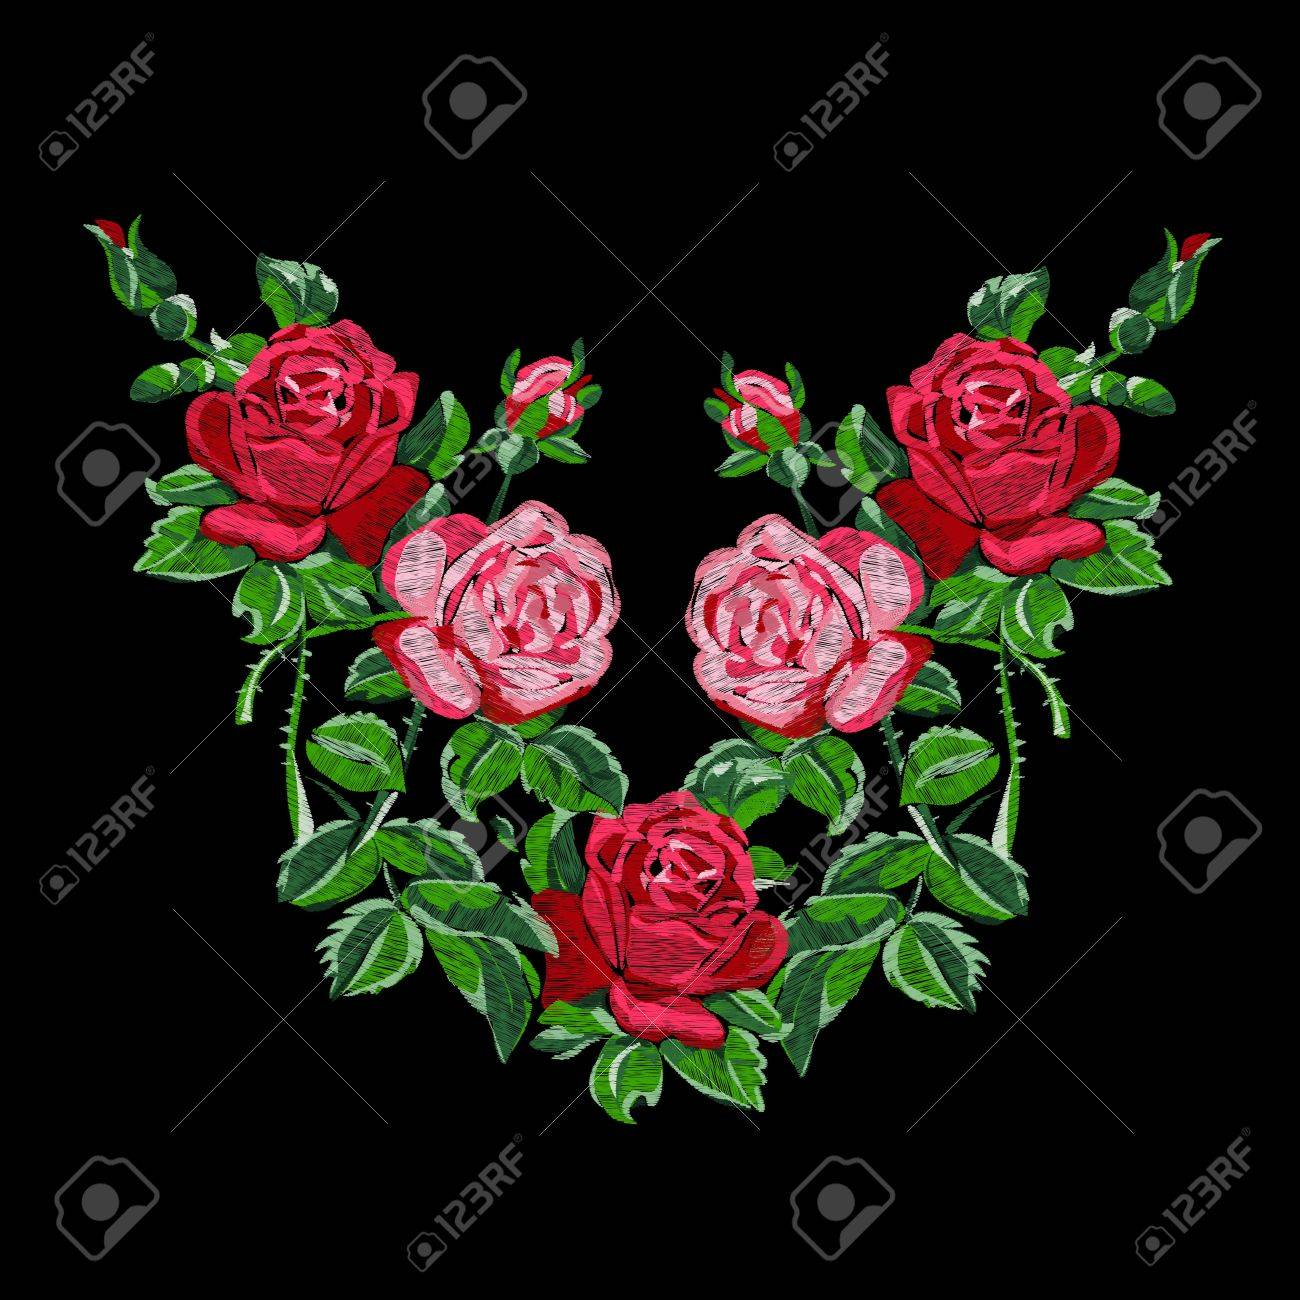 Ethnic Embroidery Of Red Roses With Buds Floral Design. Fashionable on garden dress forms, country garden designs, garden edging designs, garden home designs, garden wedding designs, garden fabric, garden box designs, garden art designs, garden cake designs, garden motif design, garden surface pattern designs, garden window designs, garden flowers designs, garden needlepoint designs,